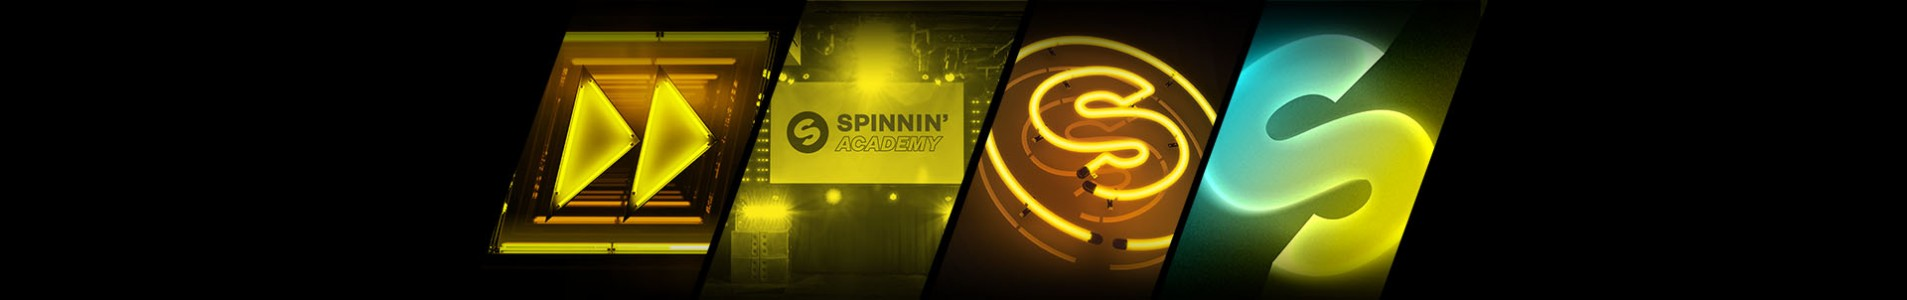 VIDEO: This is Spinnin's ADE aftermovie